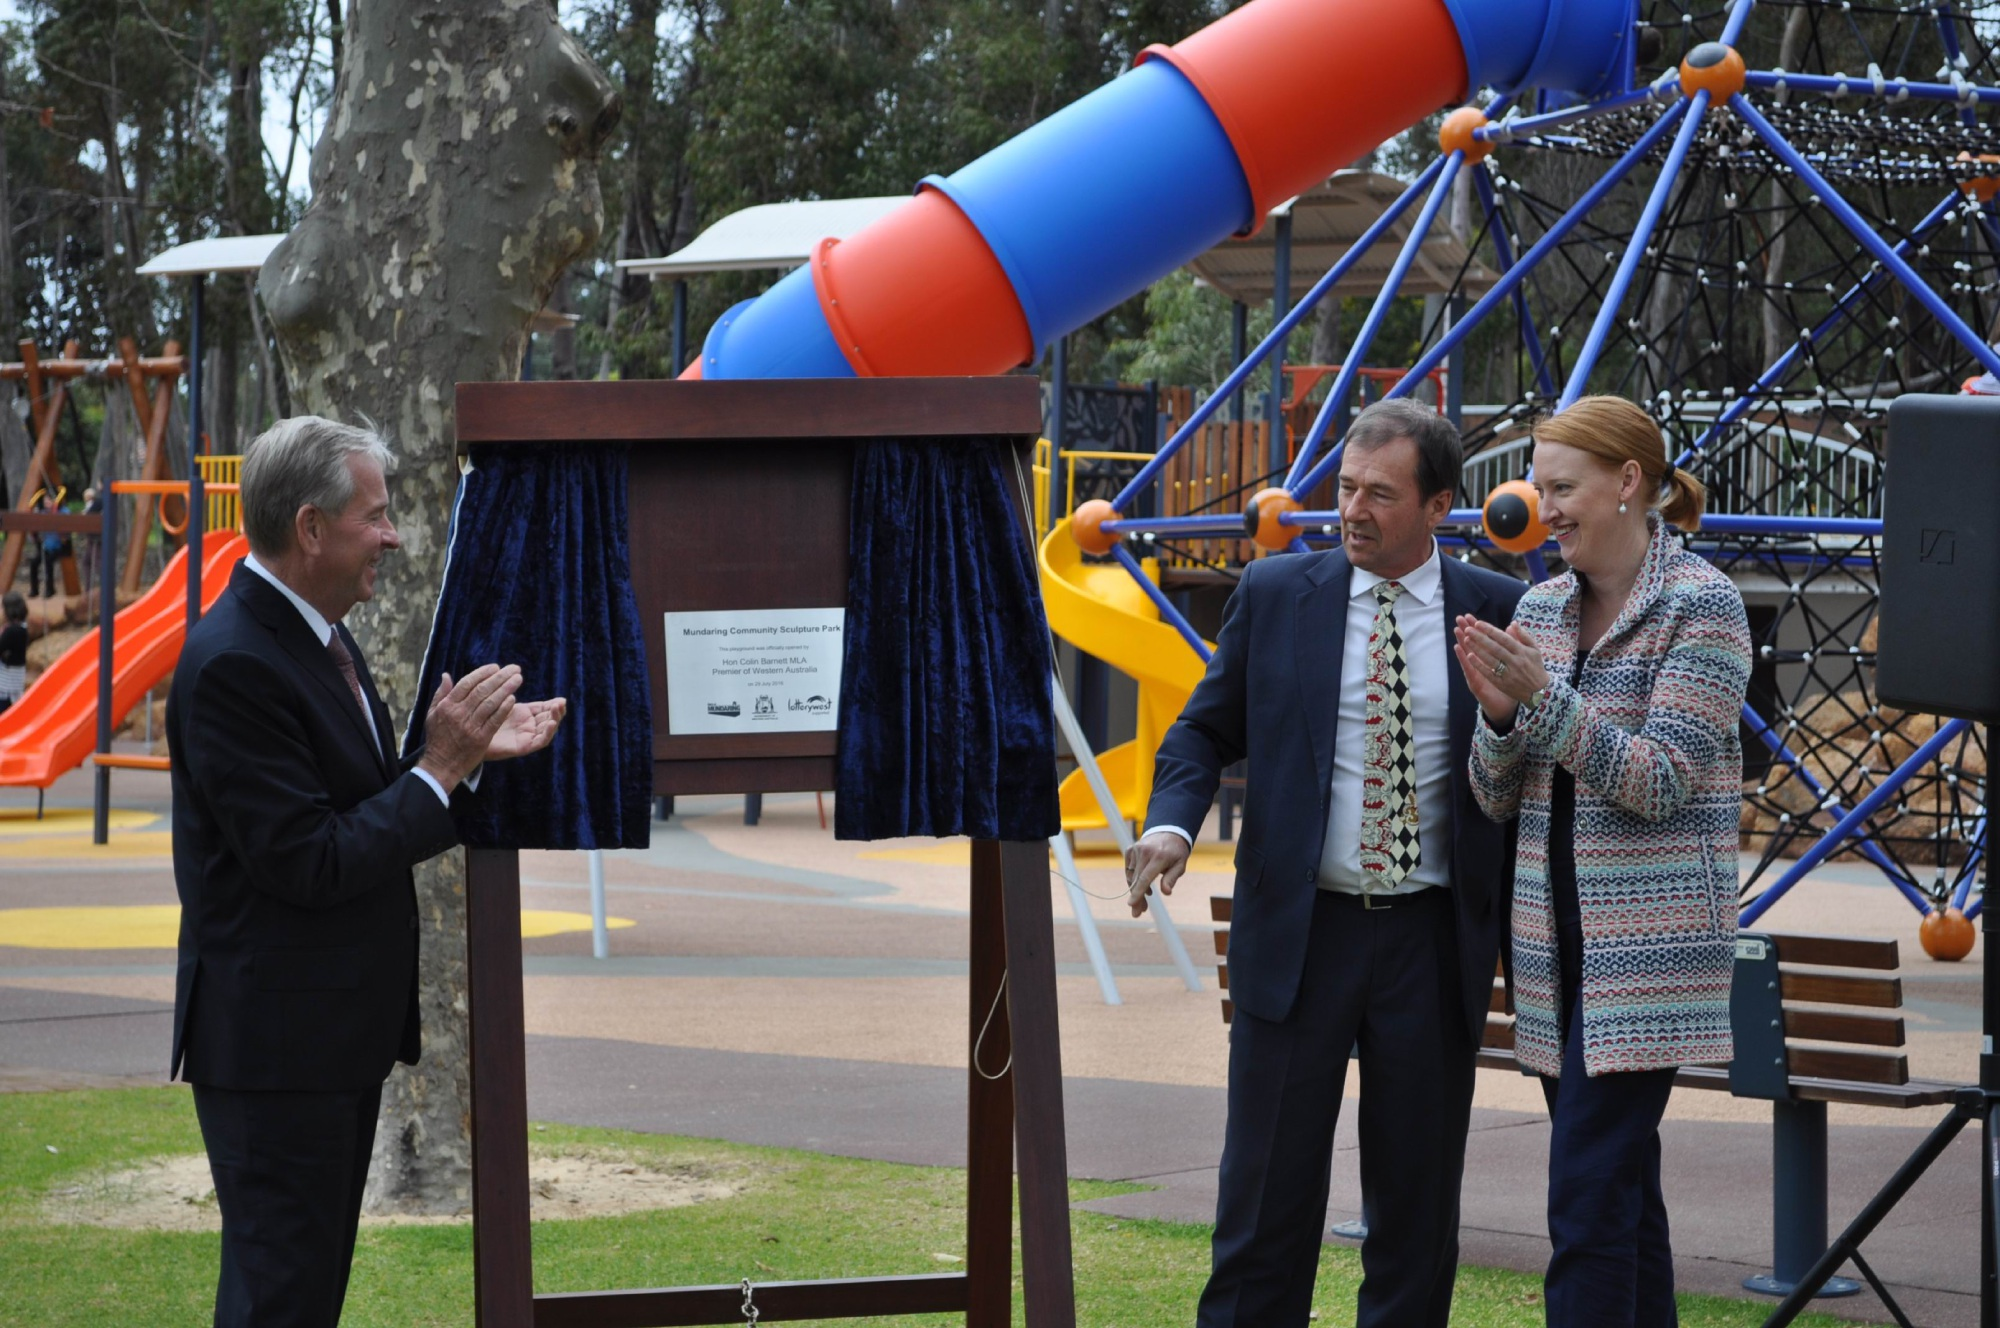 Mundaring Community Sculpture Park was officially opened by Premier Colin Barnett today, alongside Shire President David Lavell and Donna Faragher.